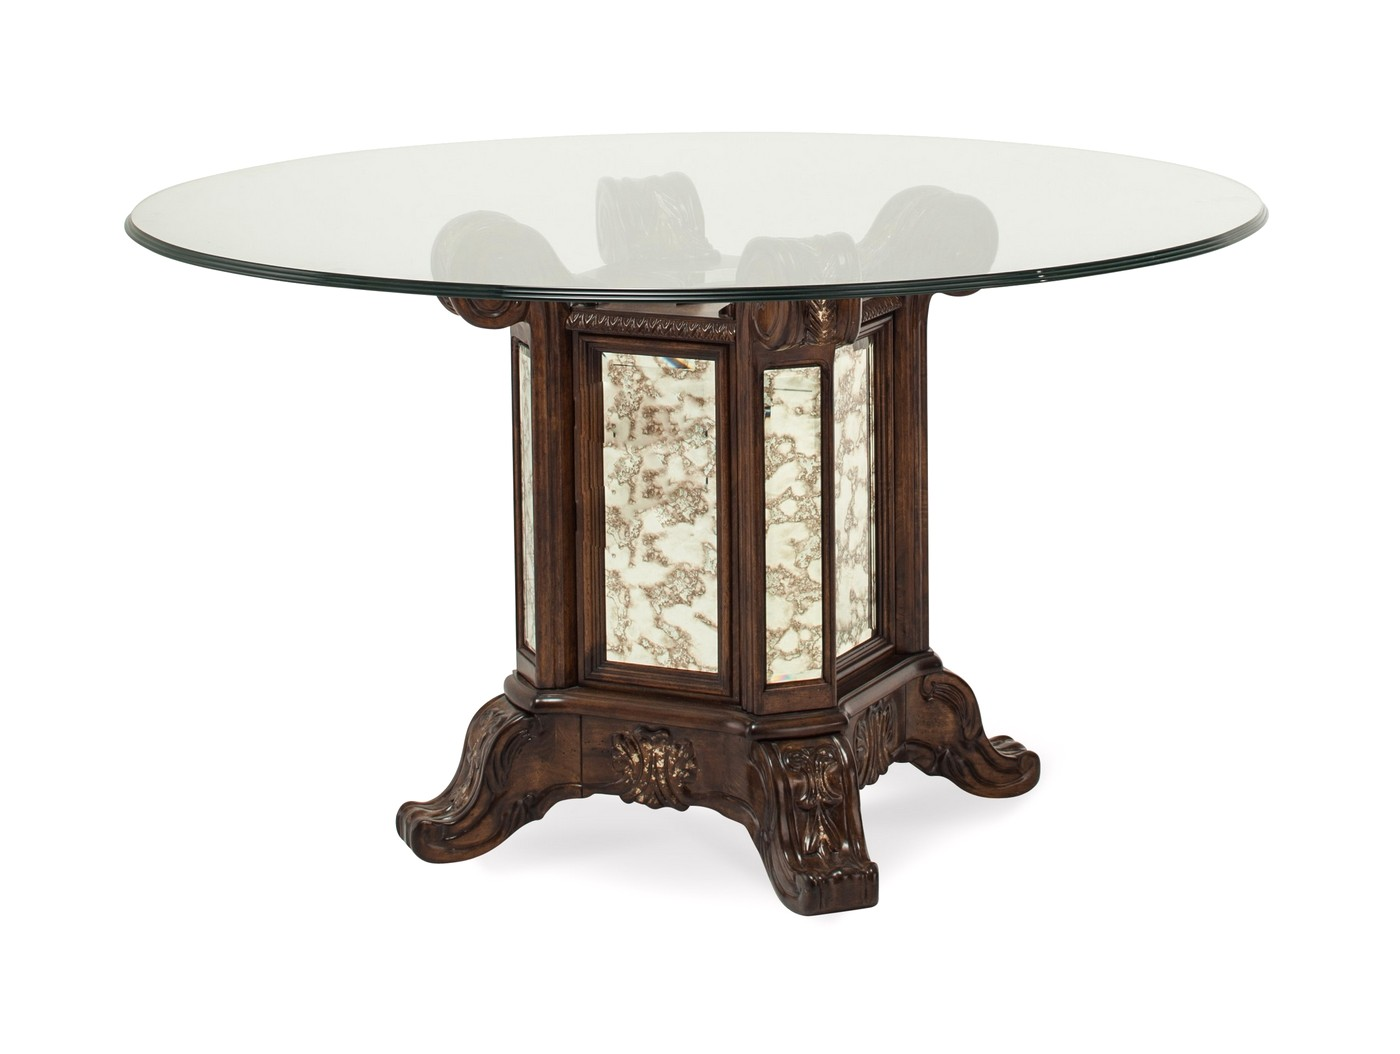 Platine de royale 54 round glass dining table in light for Light wood dining table